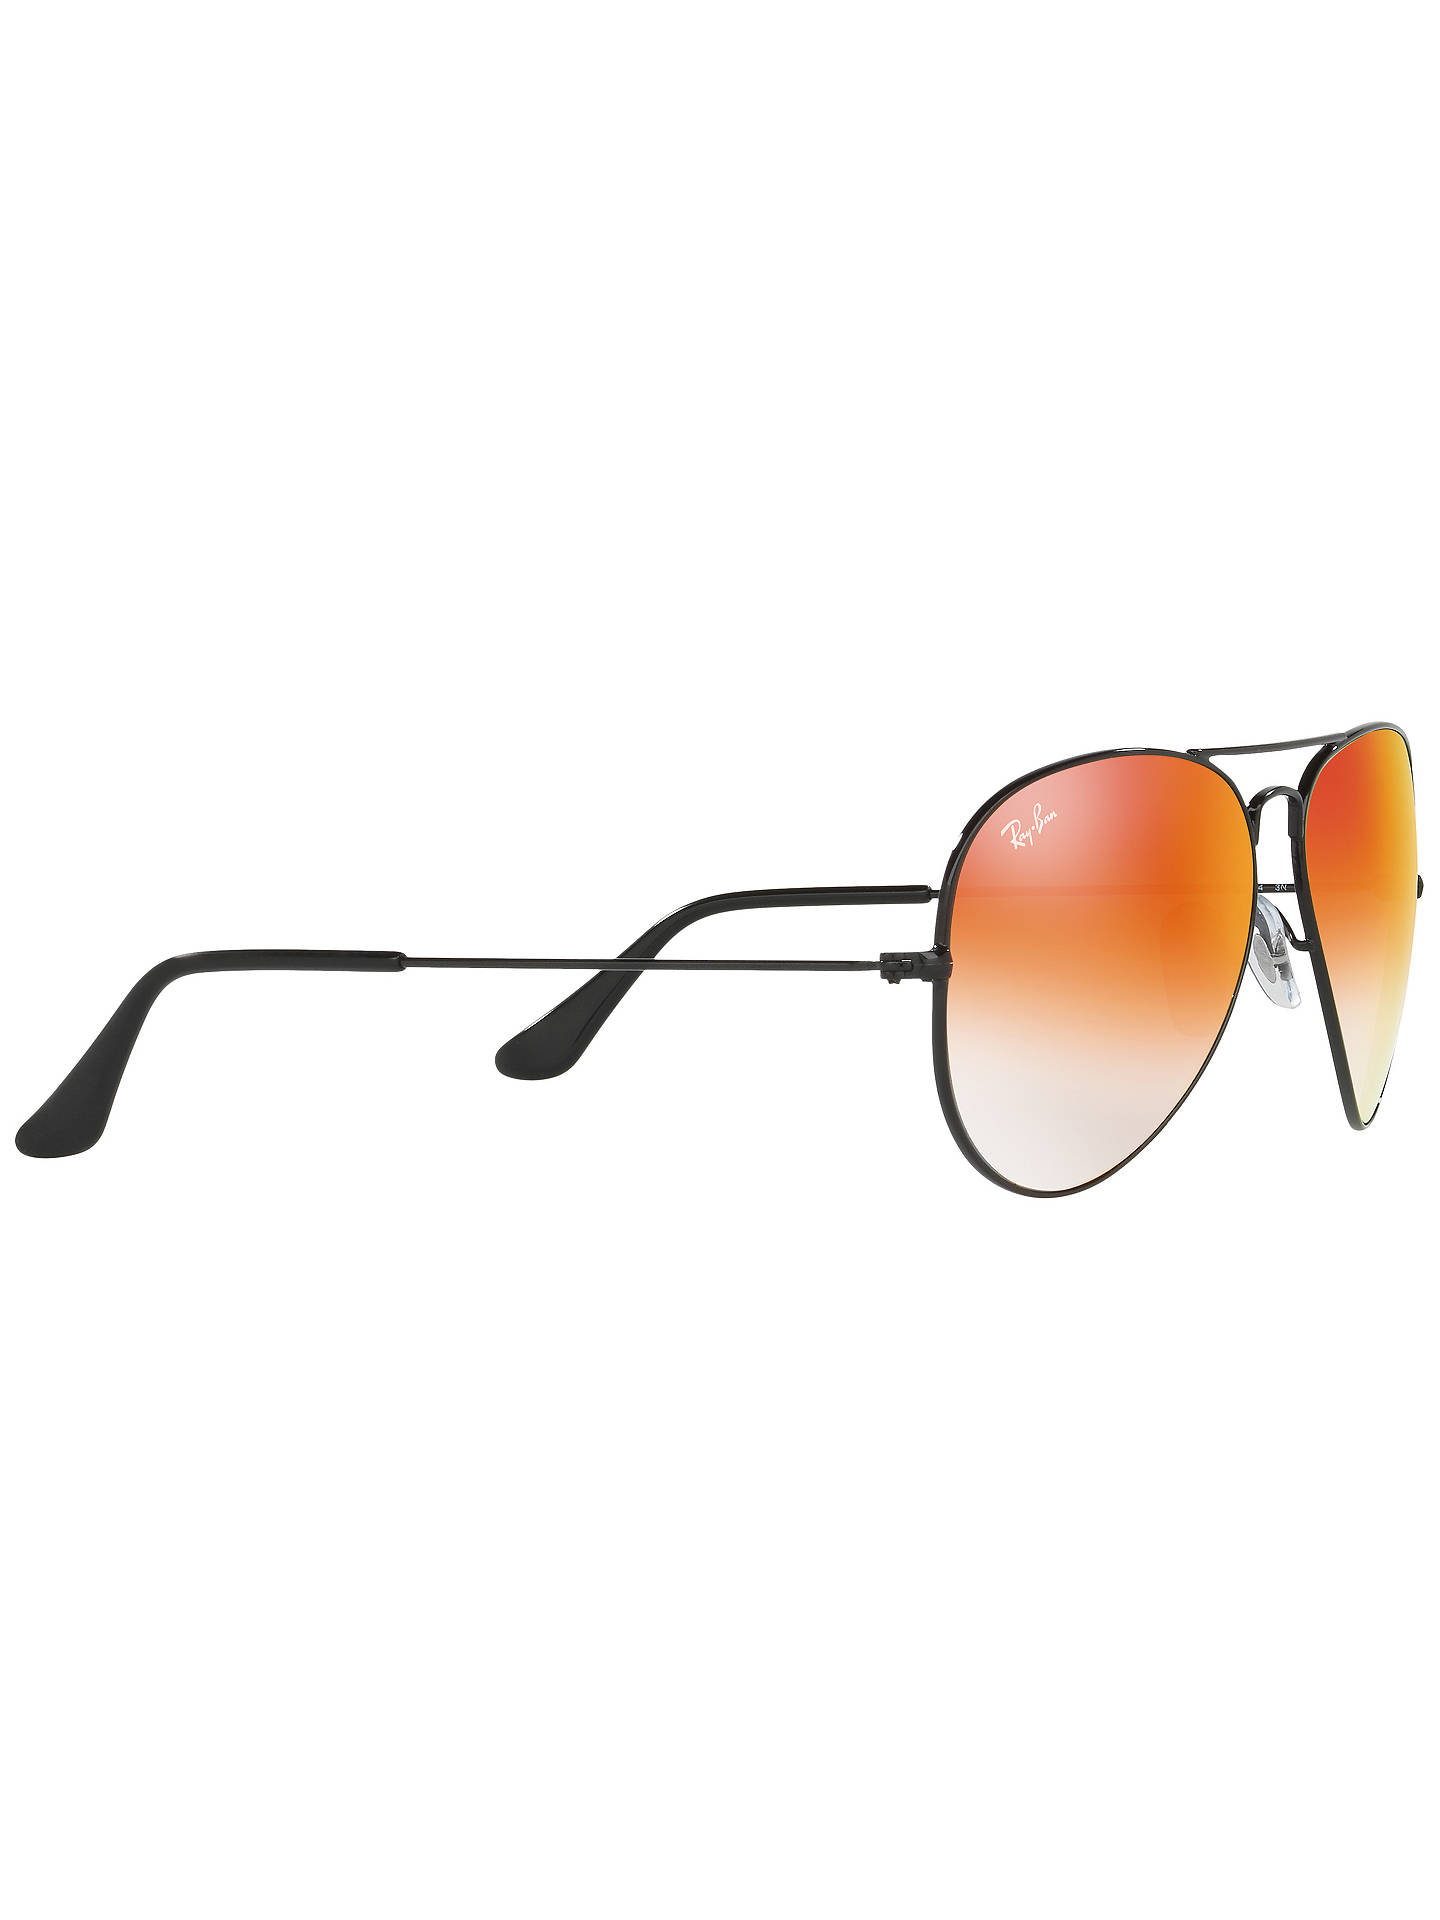 Buy Ray-Ban RB3025 Aviator Sunglasses, Black/Orange Online at johnlewis.com